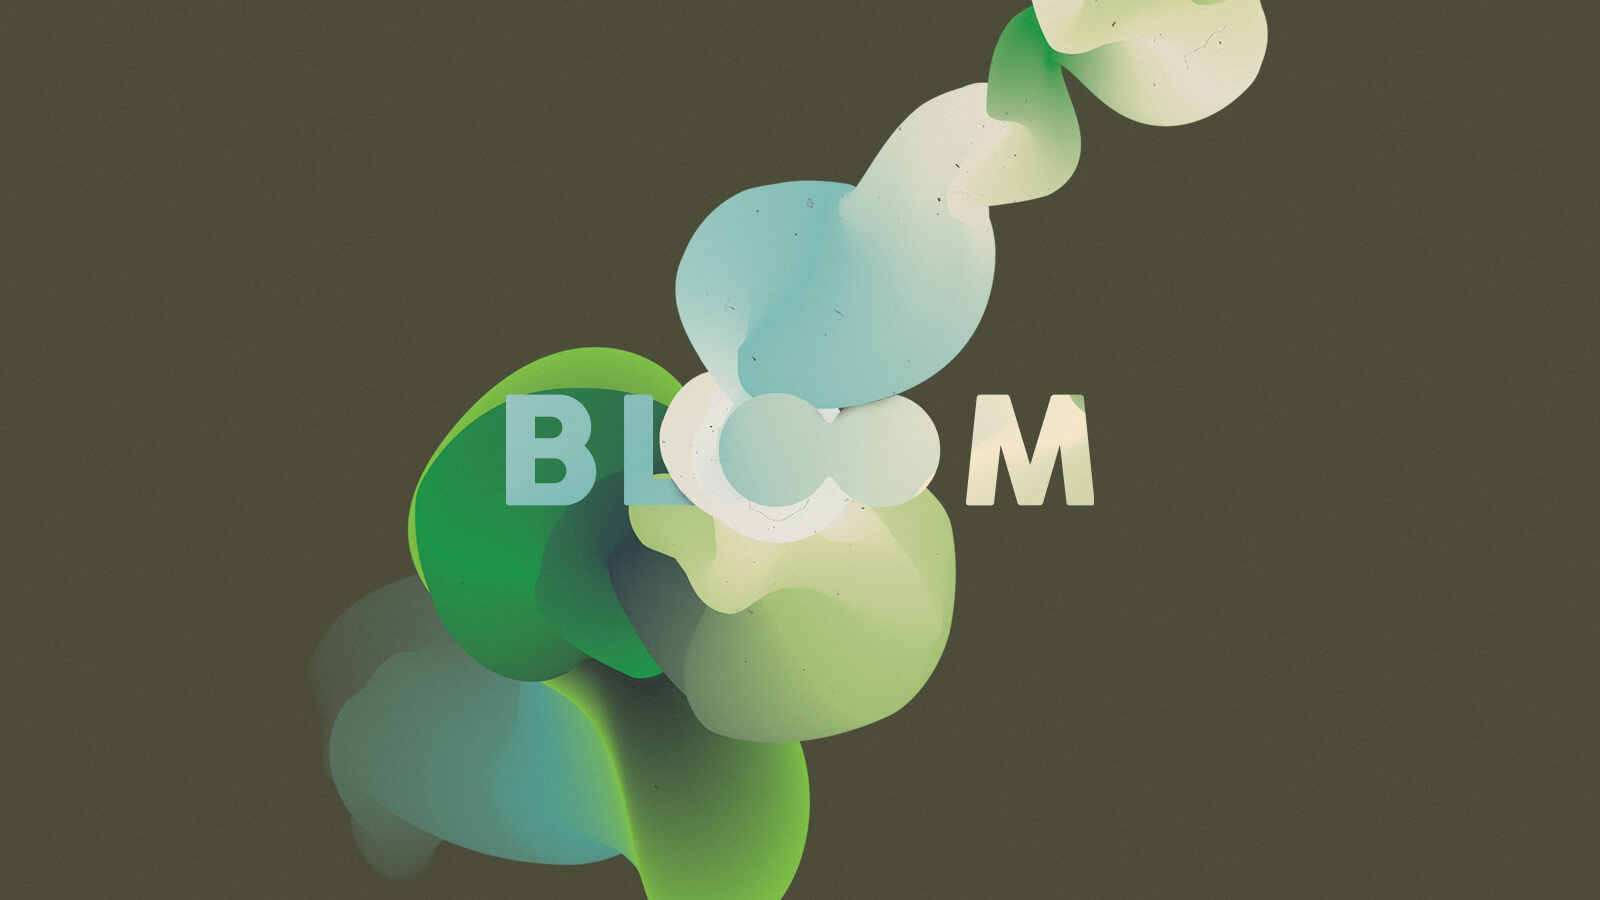 Bloom_v2_Keynote_8